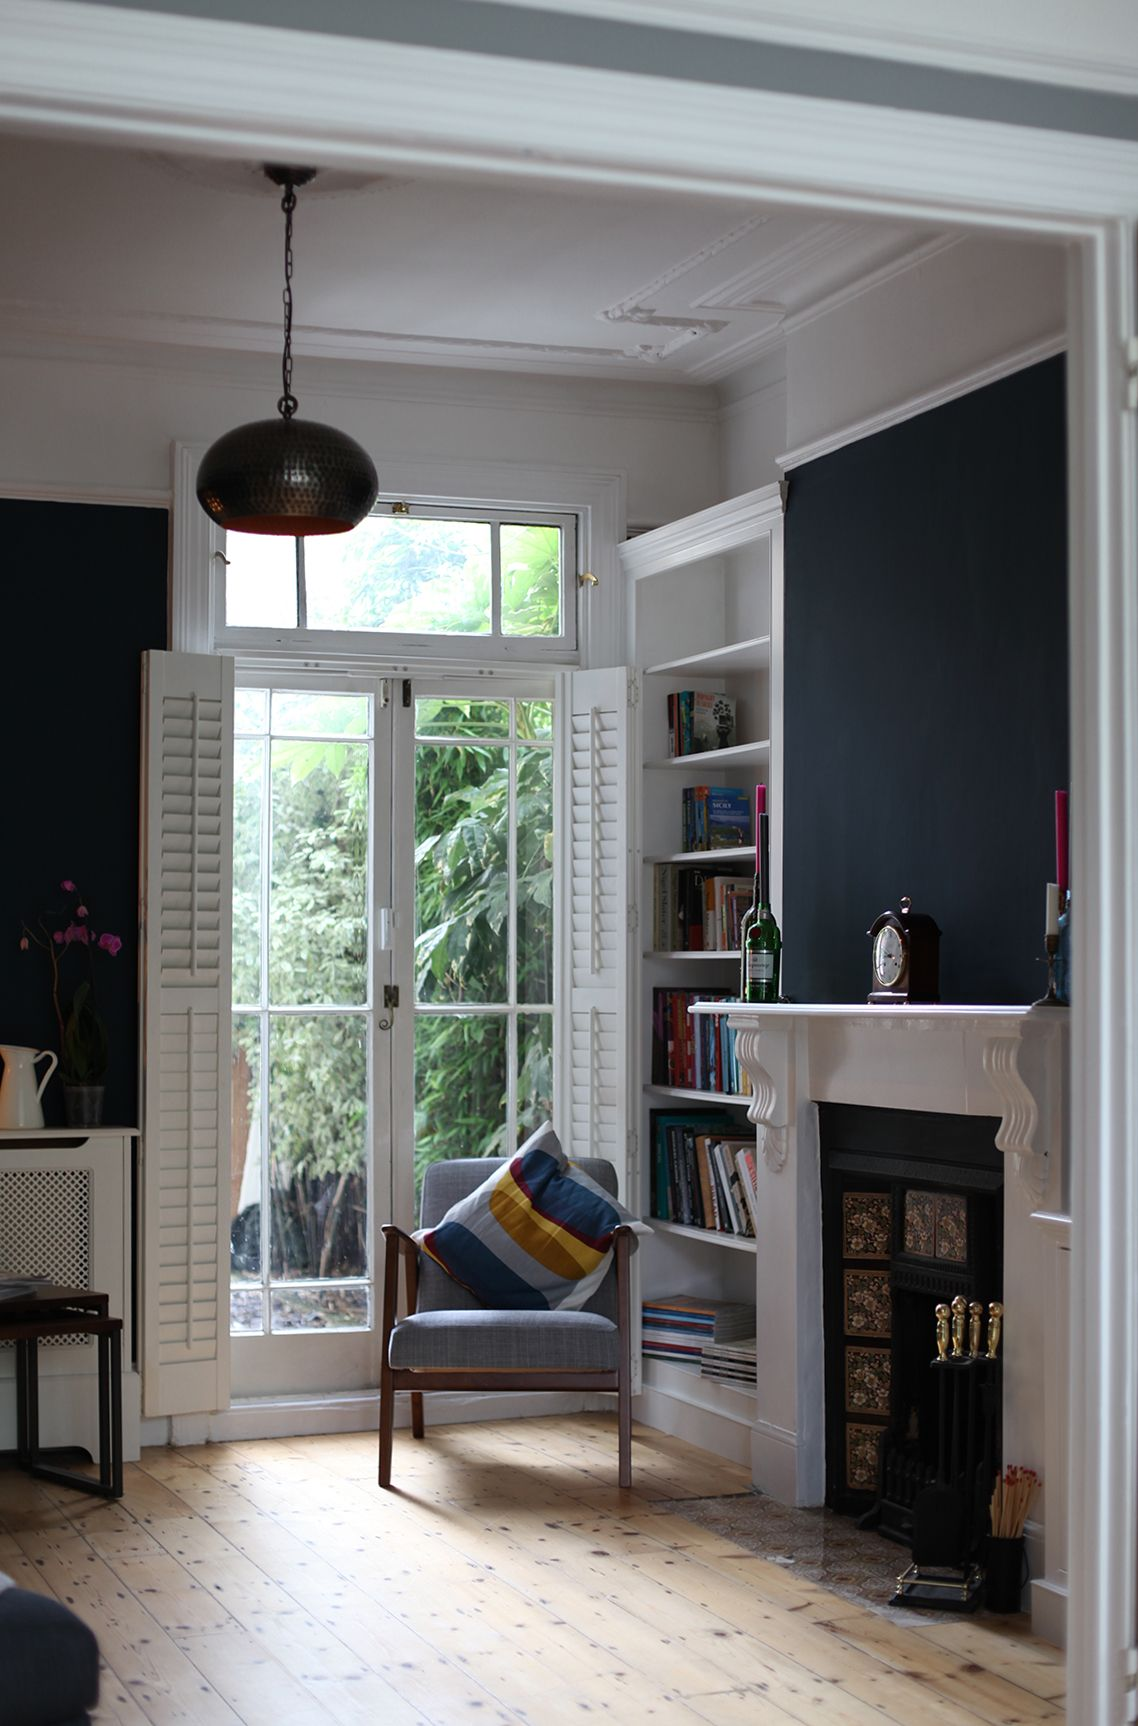 farrow ball hague blue no 30 estate emulsion for this gorgeous sitting room henryfix. Black Bedroom Furniture Sets. Home Design Ideas